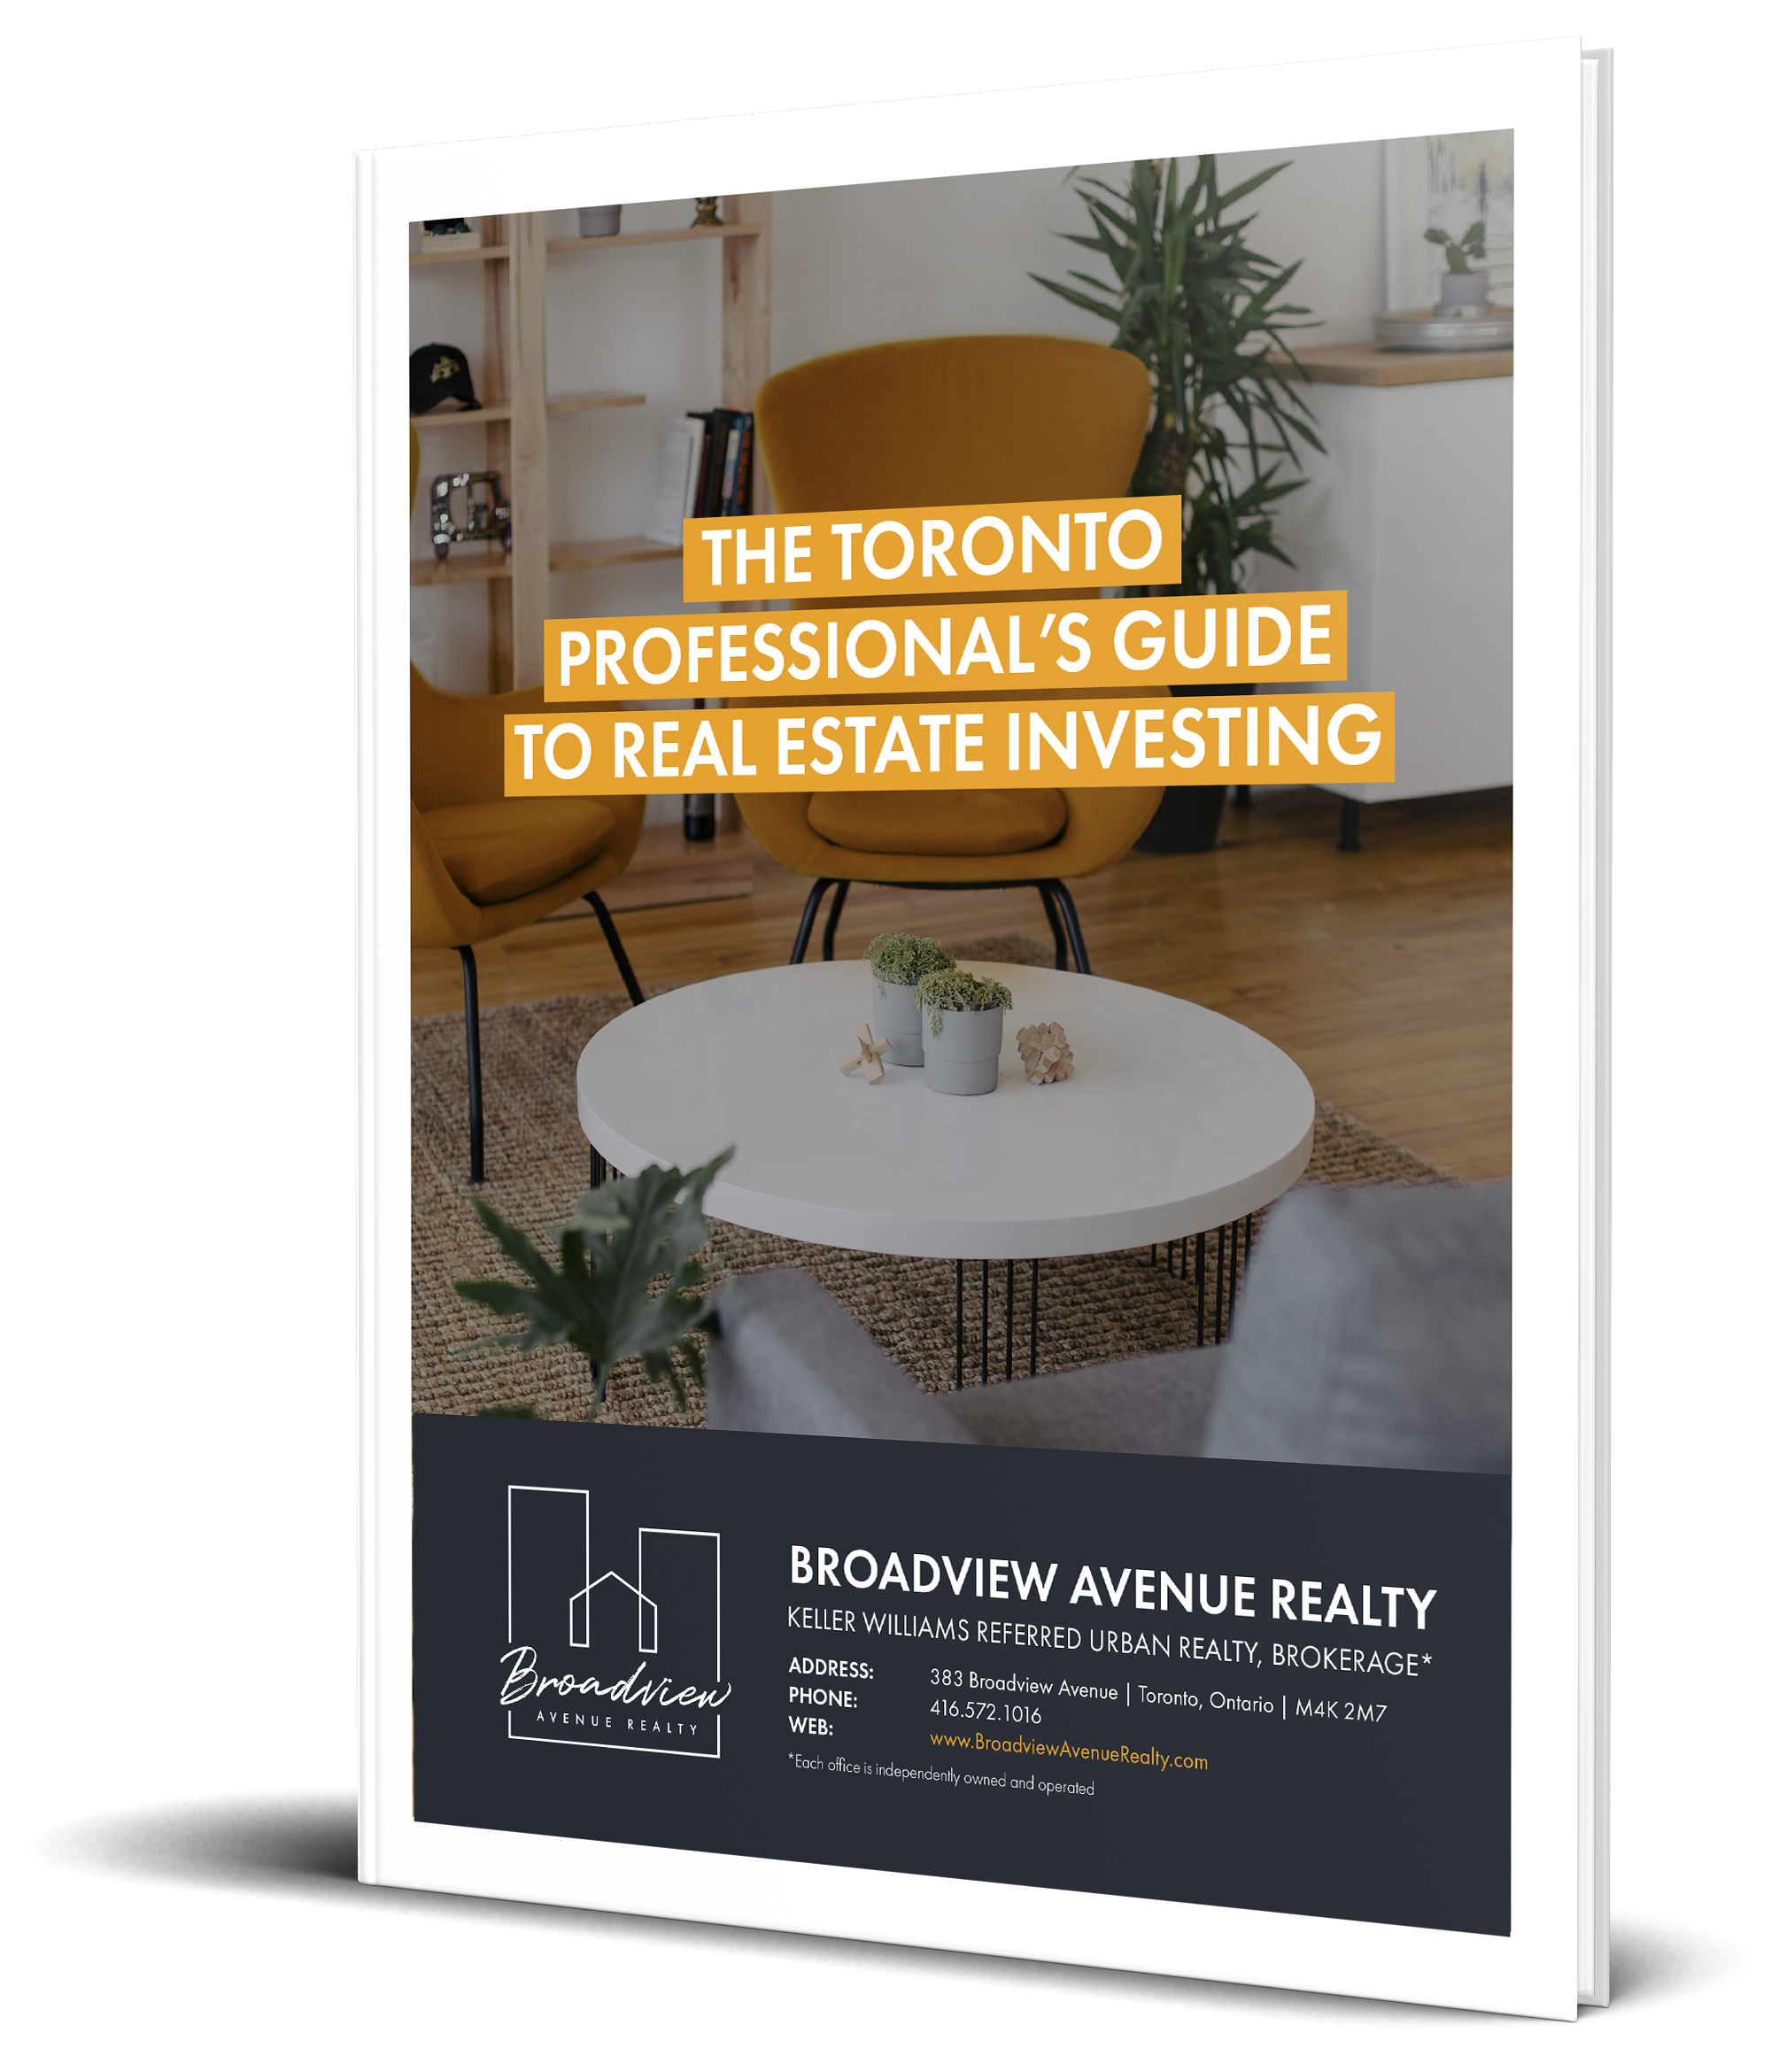 The Toronto Professional's Guide to Real Estate Investing - MockUp - Transparent.png